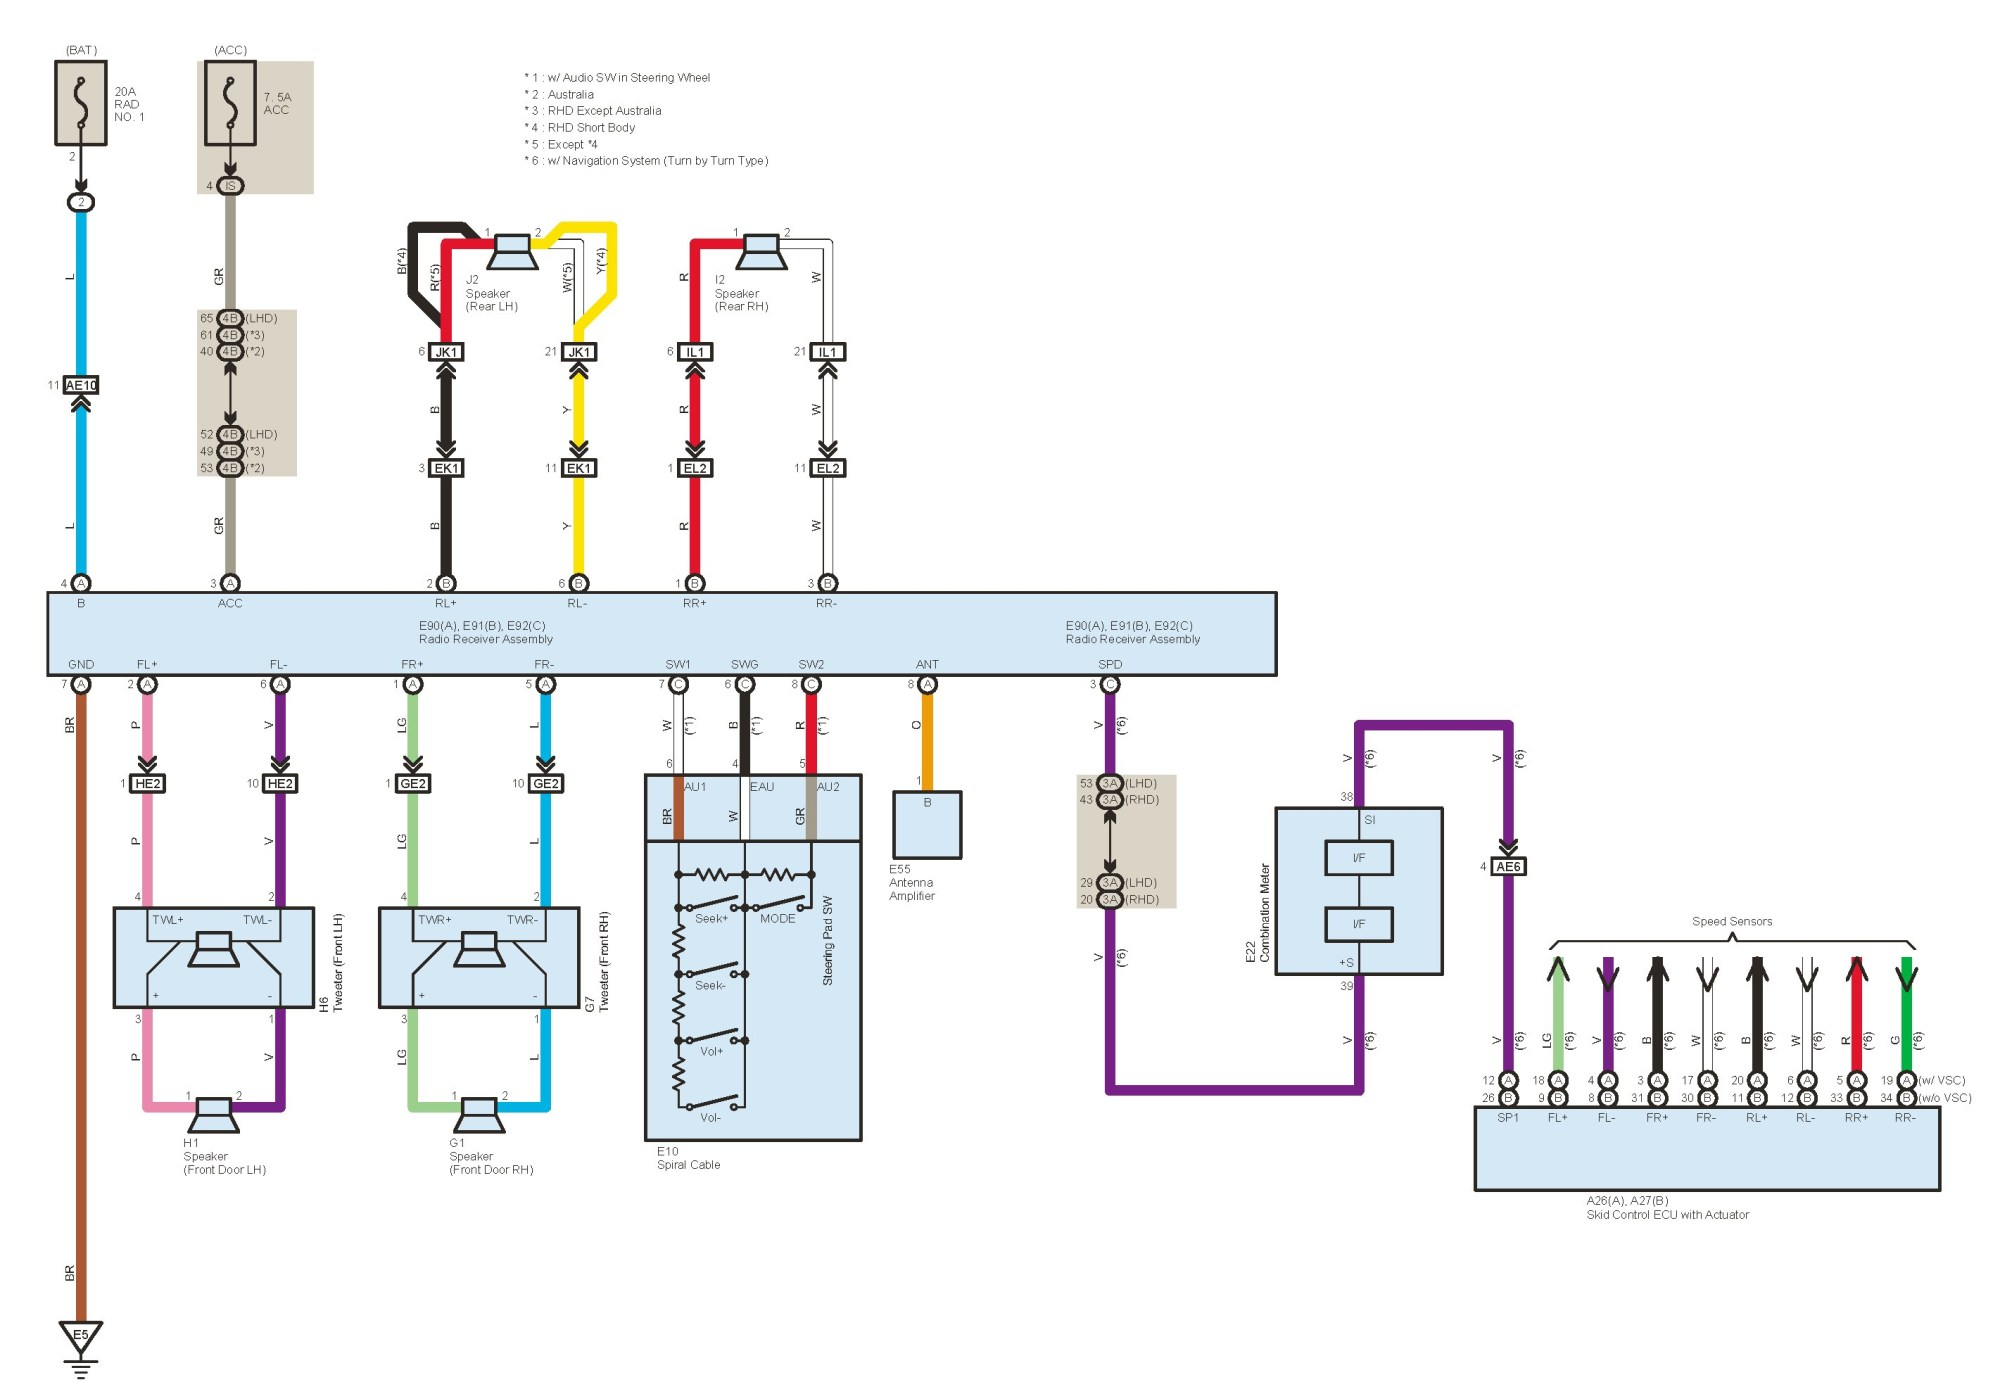 hight resolution of 2007 toyota tundra wiring diagram 2018 toyota tundra wiring diagram unique toyota innova car stereo of